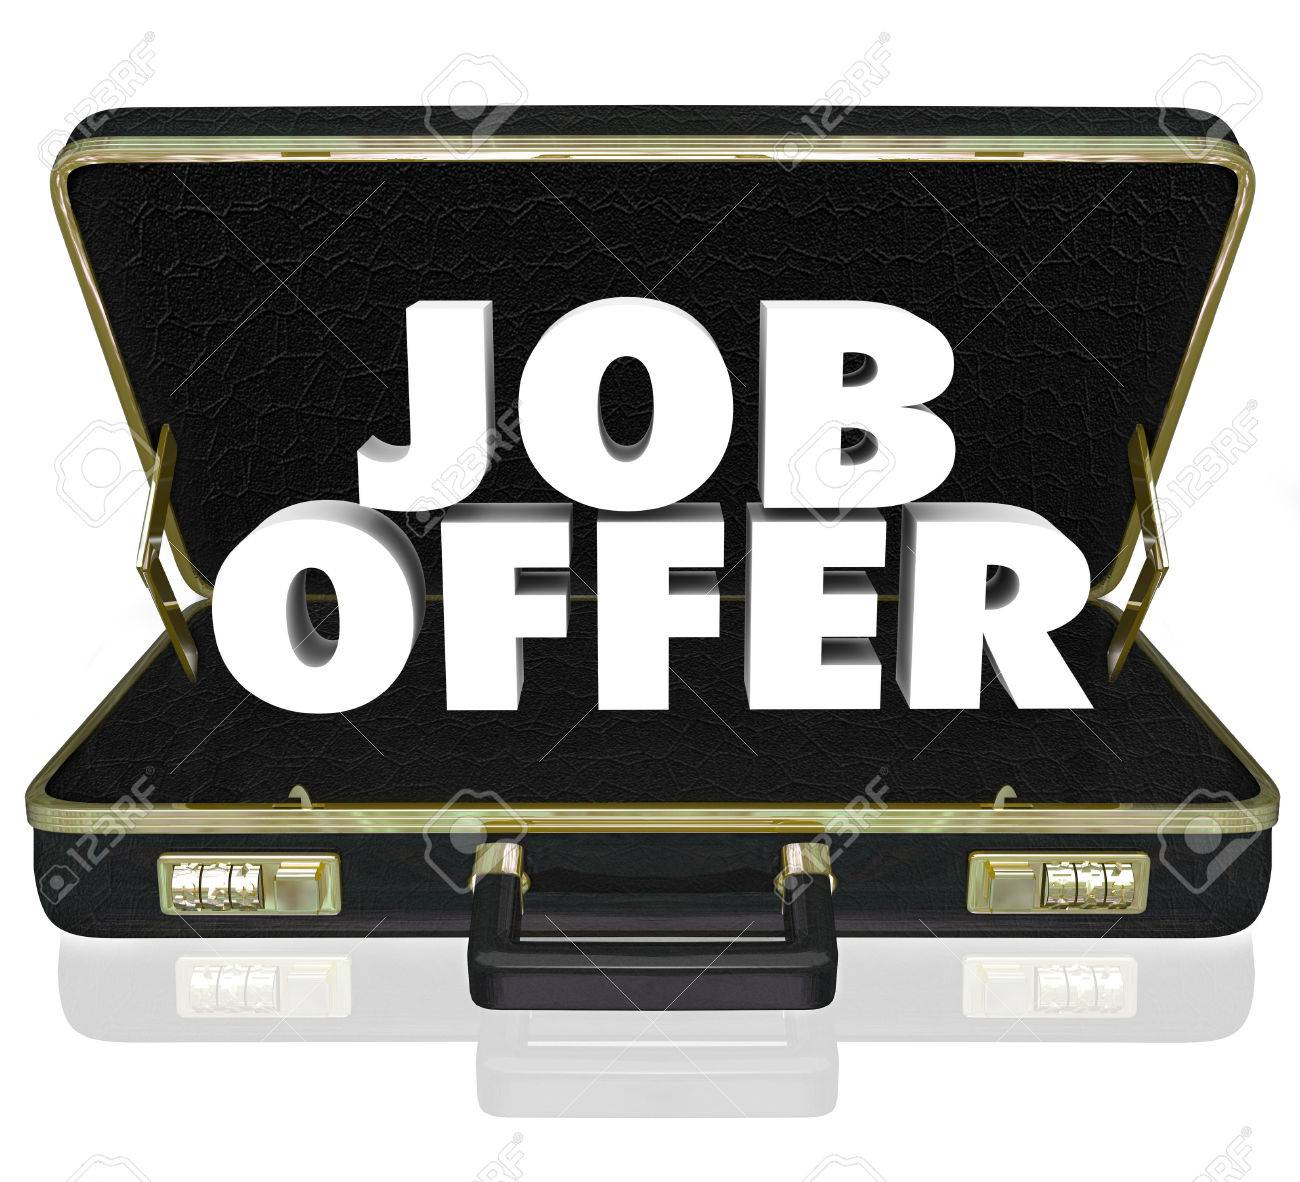 job offer 3d words in a black leather briefcase to illustrate job offer 3d words in a black leather briefcase to illustrate a career opporunity by being